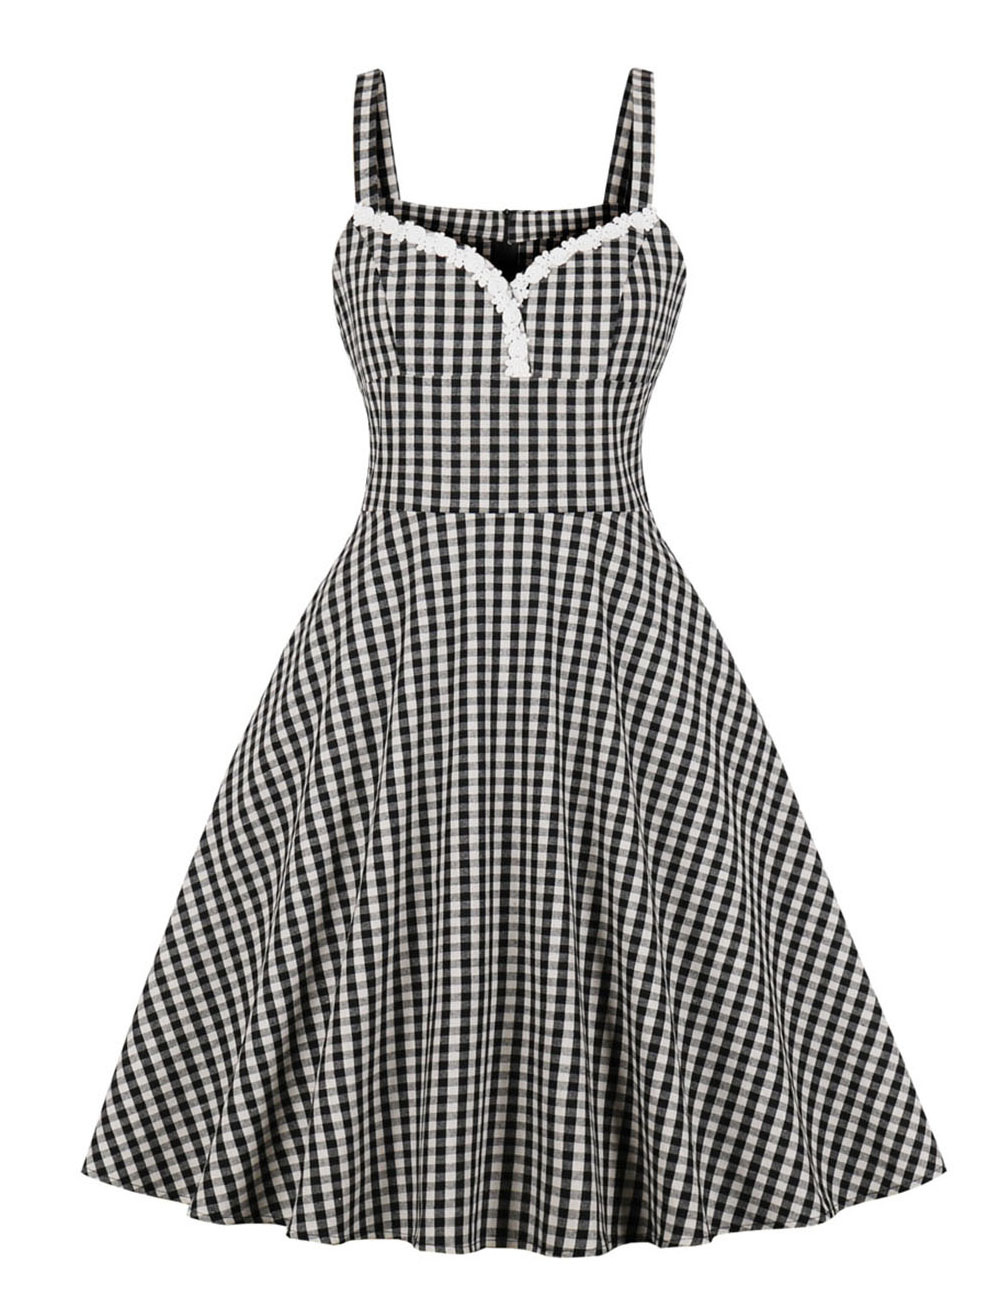 plaid vintage dress 1950s lace sweetheart sleeveless women pin up pleated  swing retro dress